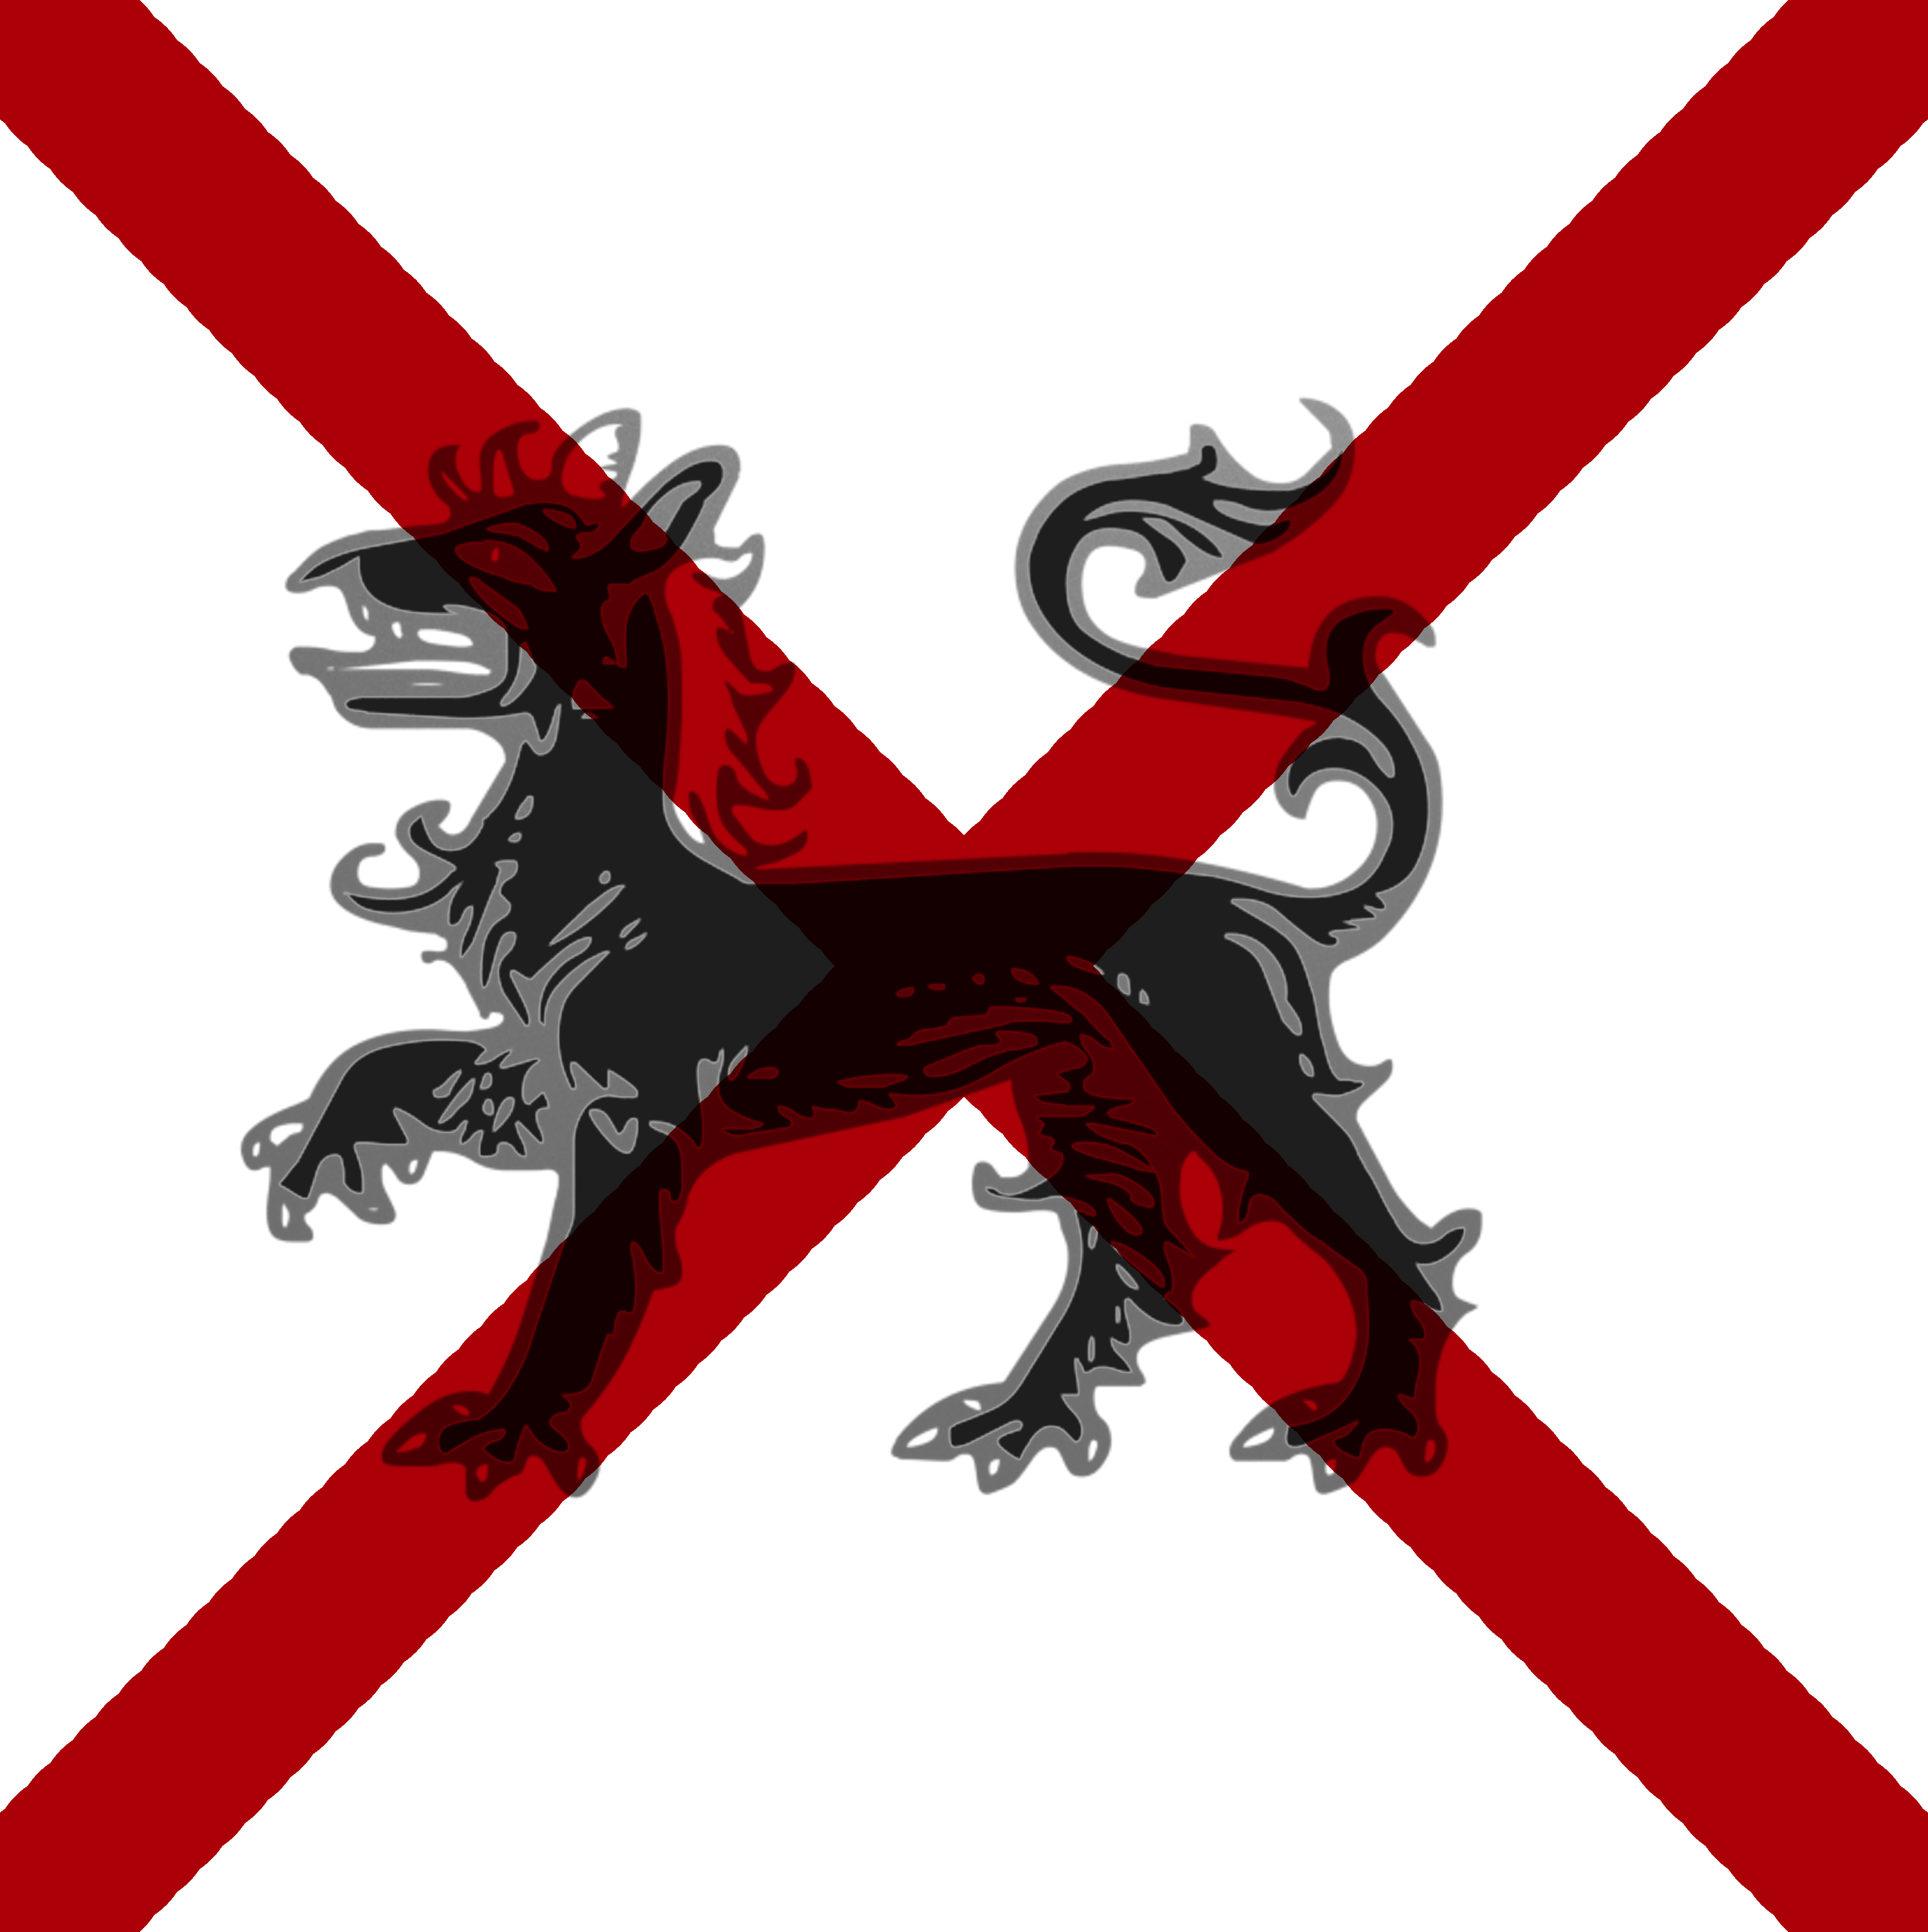 theREDFLAG